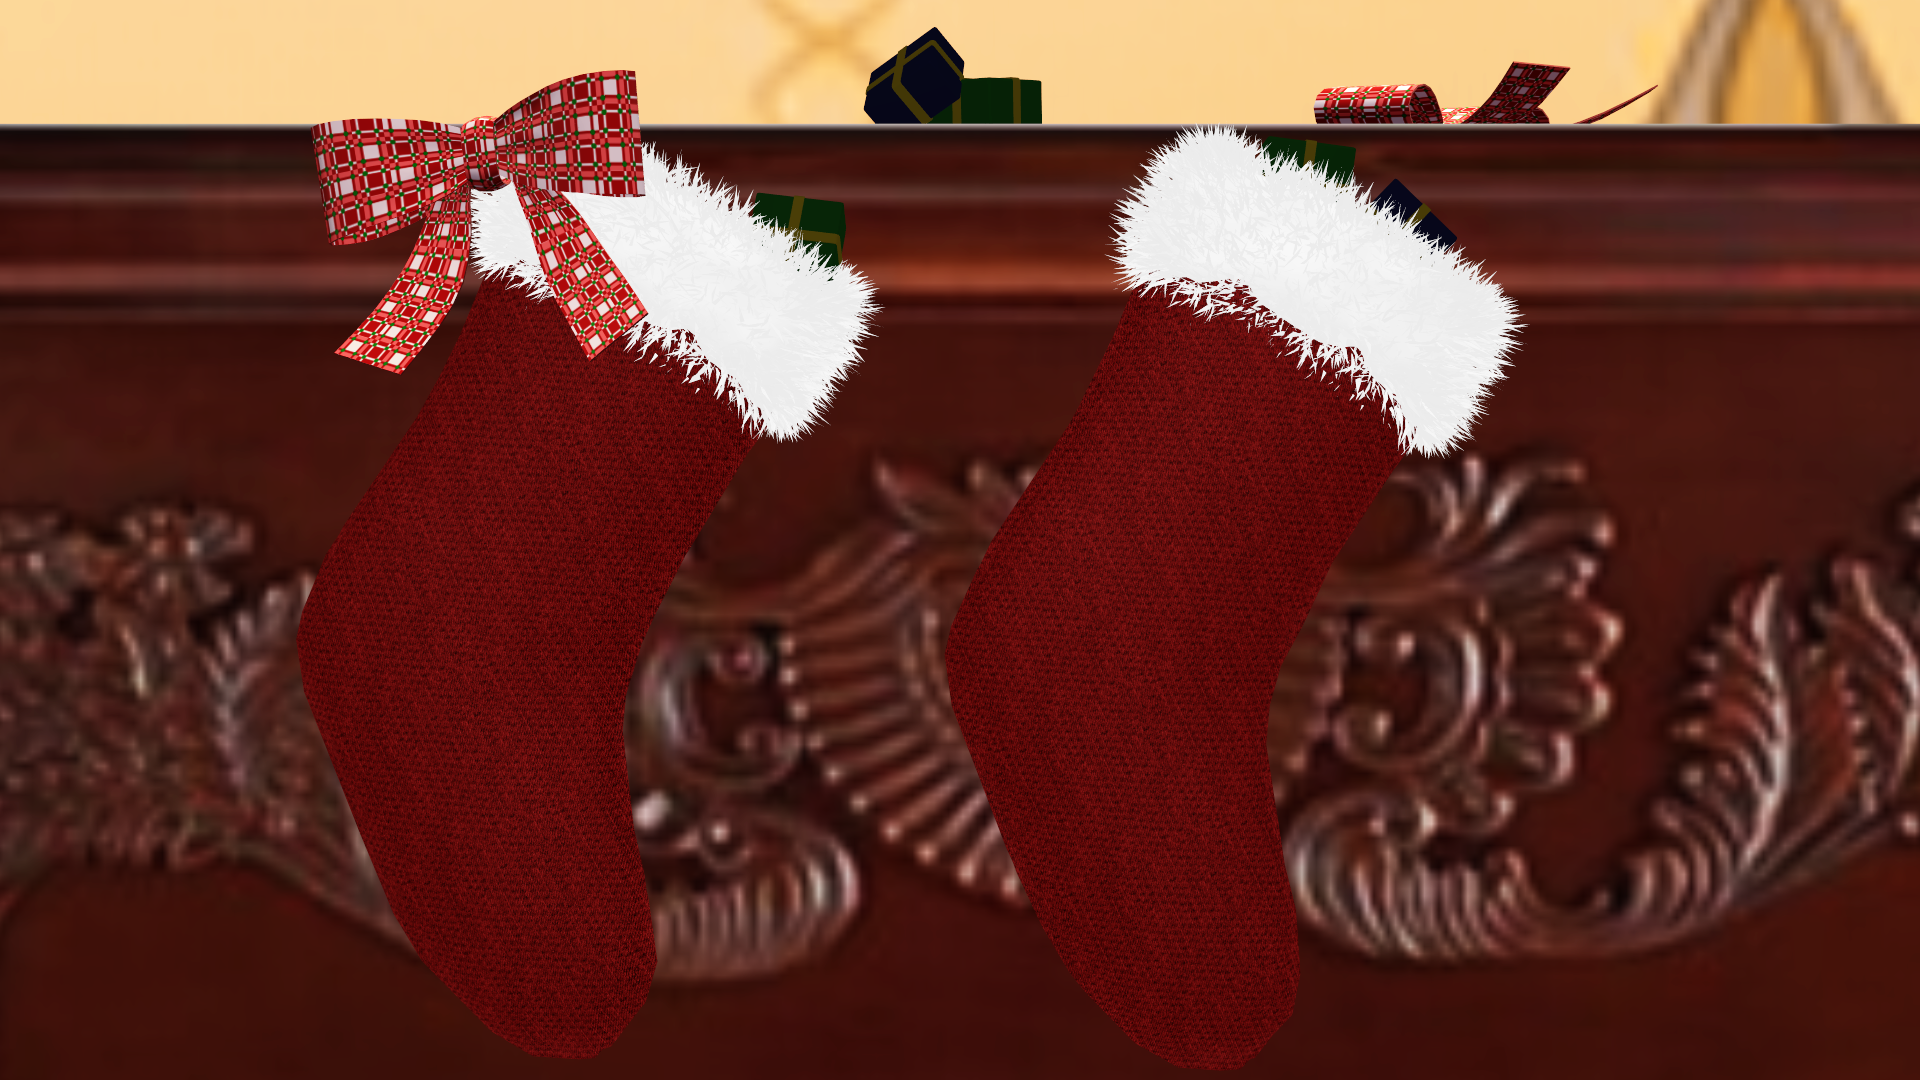 mmd dl christmas stockings by onimau619 on deviantart